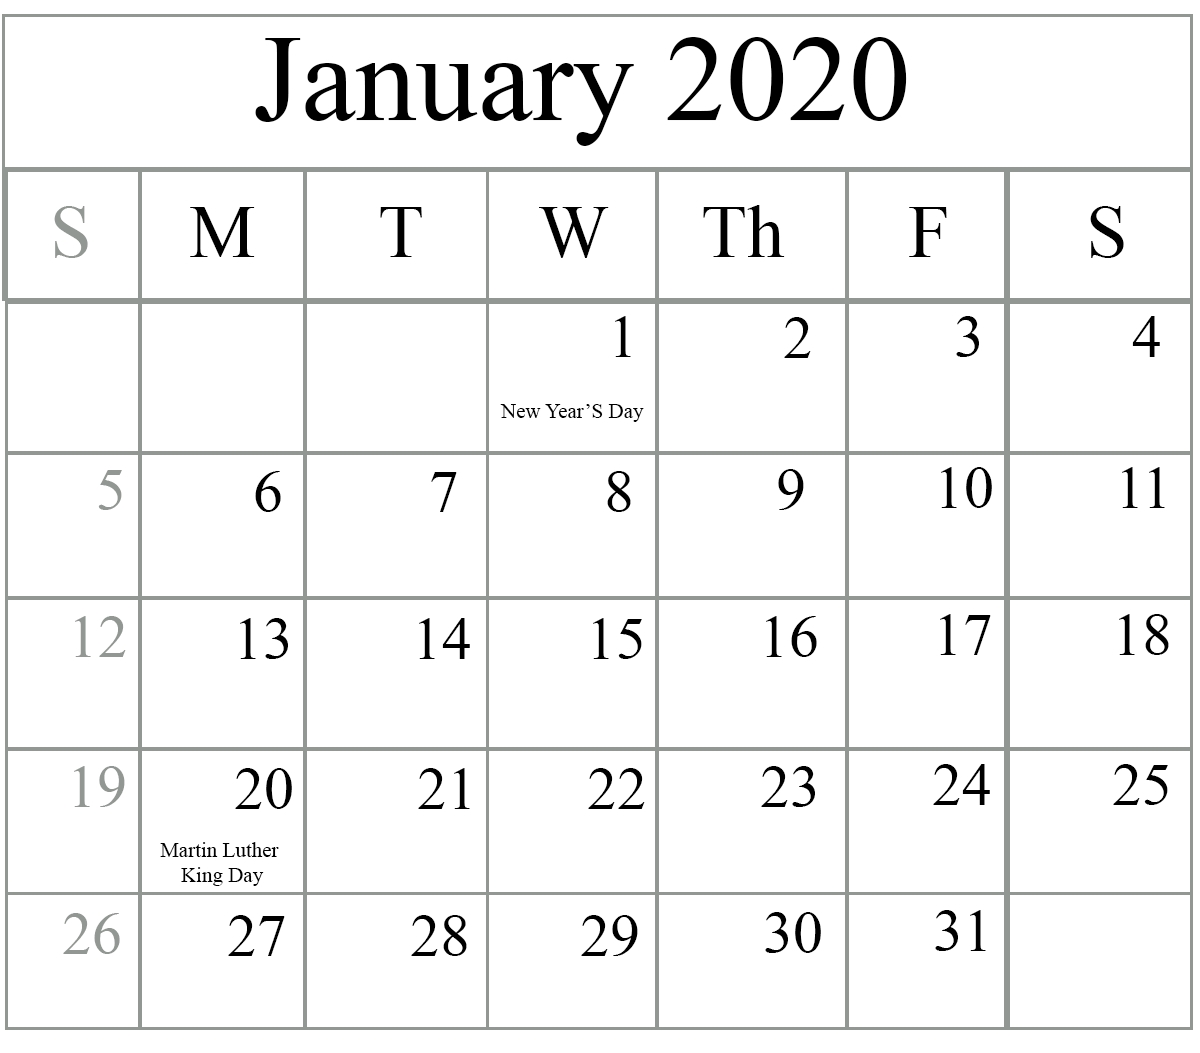 Free January 2020 Printable Calendar In Pdf, Excel & Word for 2020 Calander To Write On